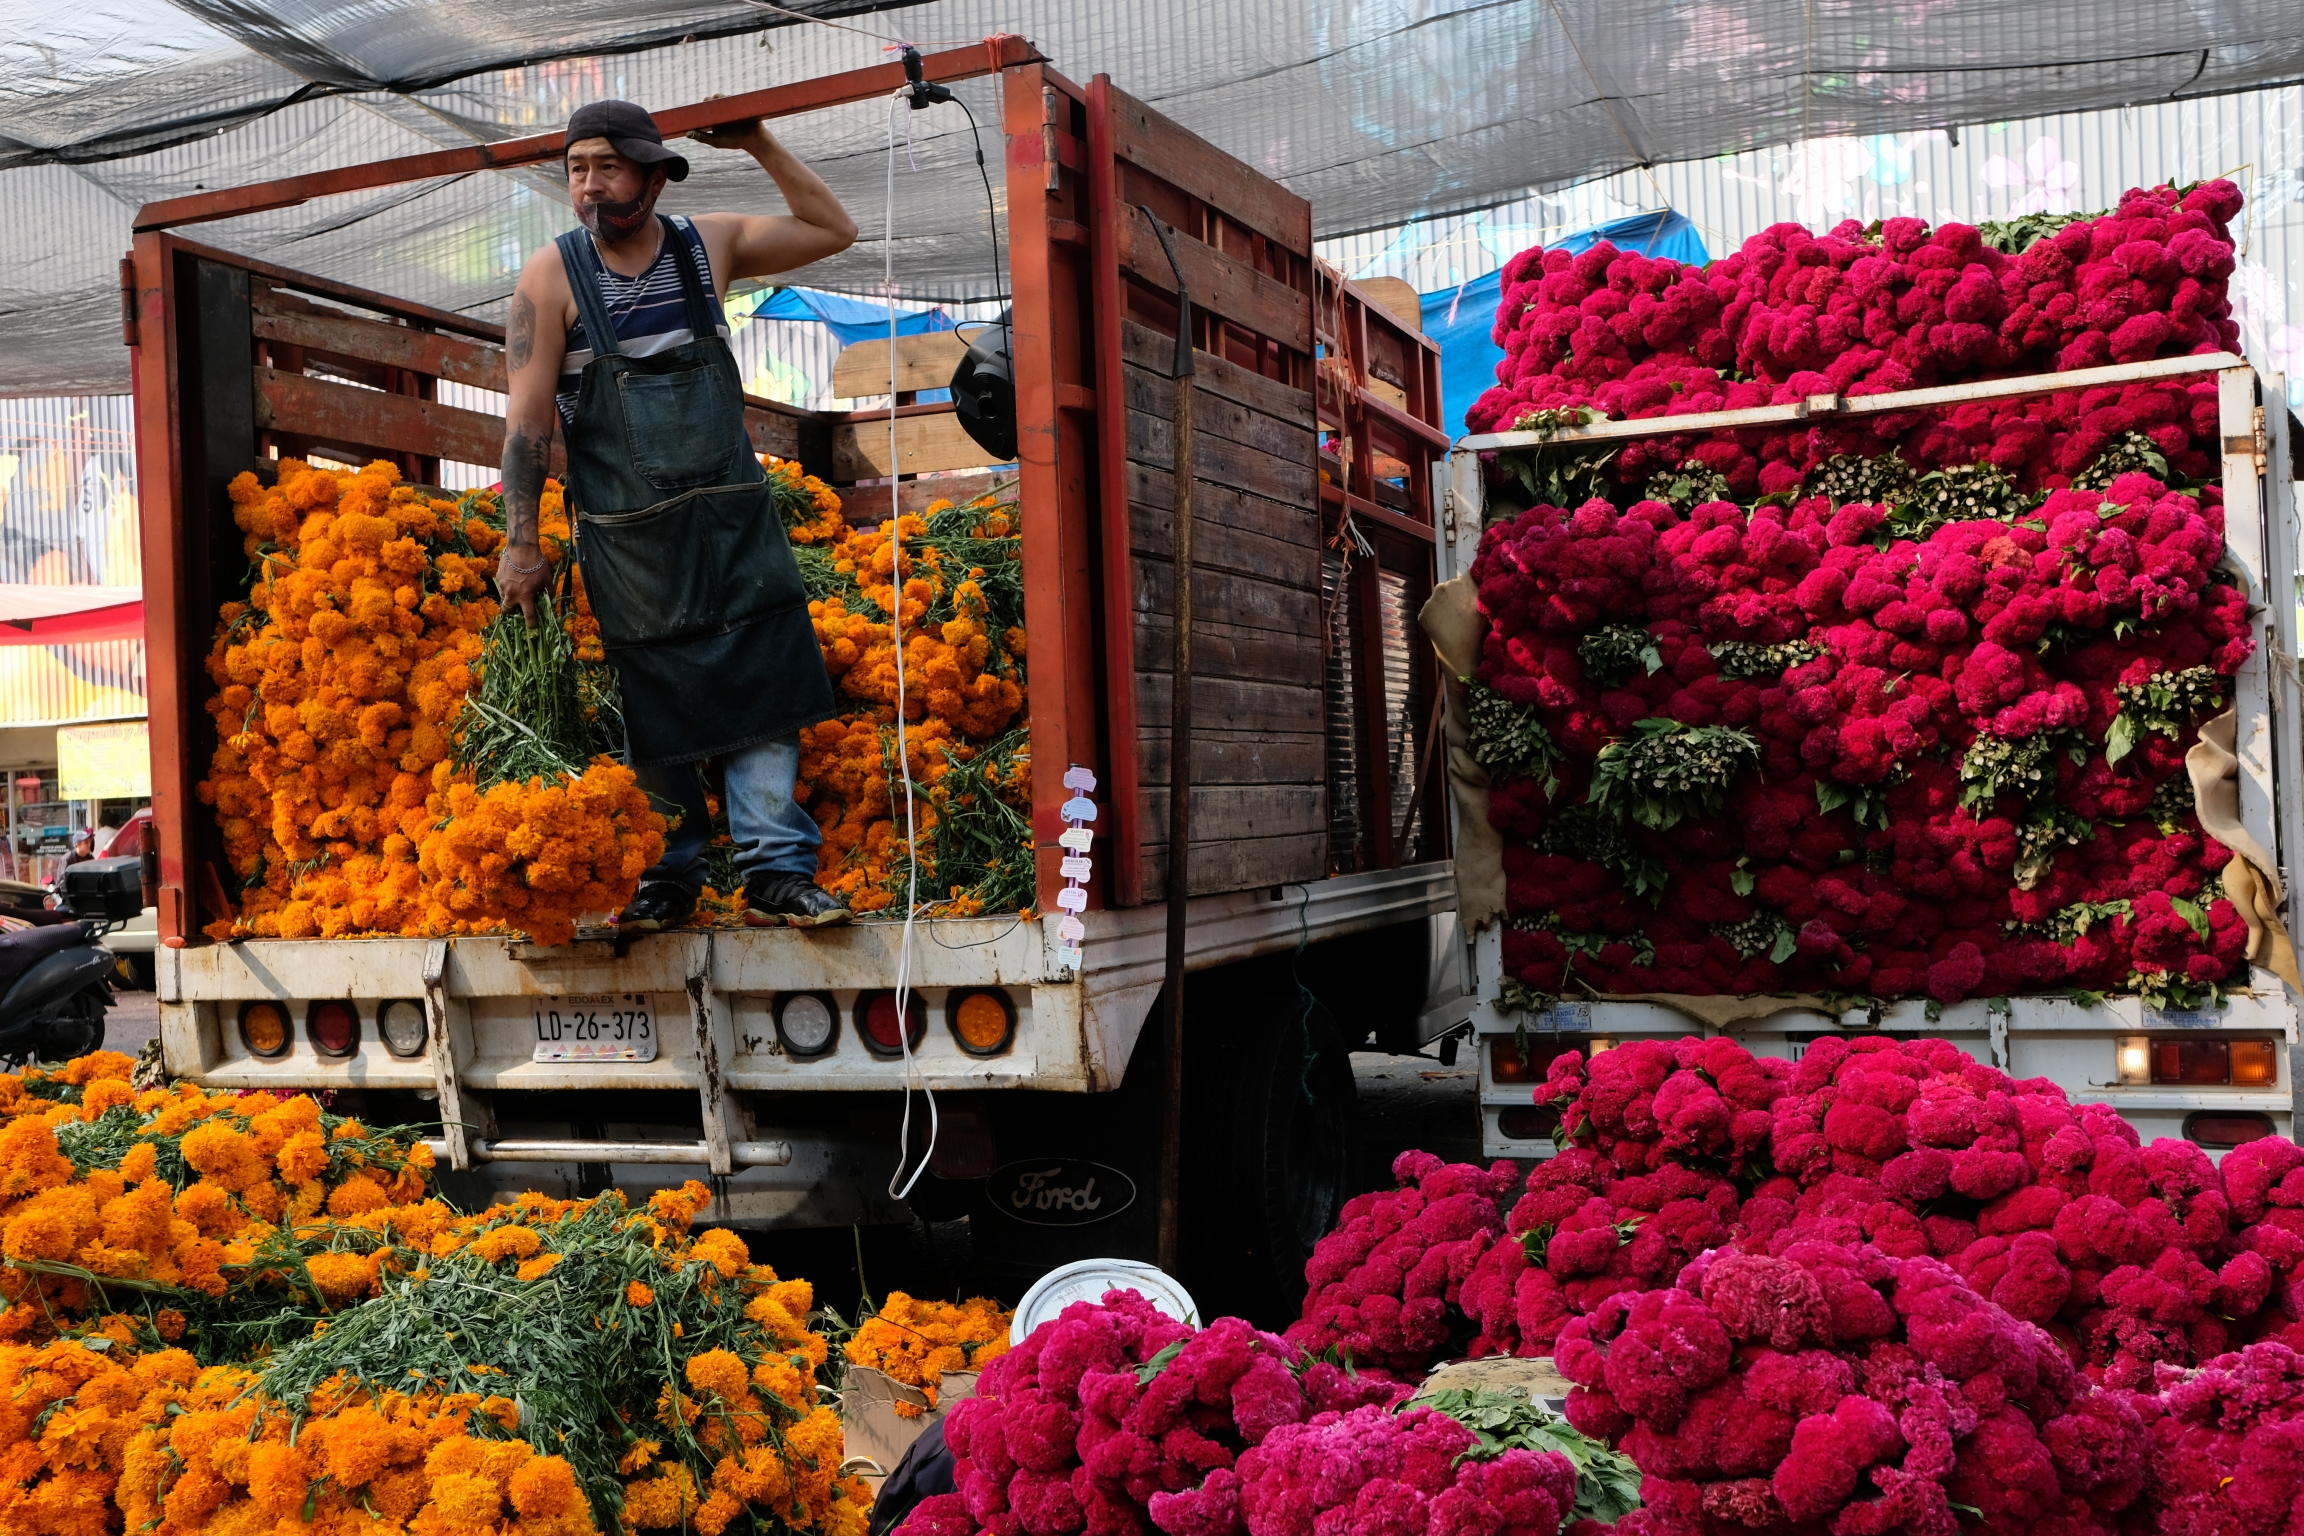 A man stands inside a truck bursting with gold and pink flowers all around him in a market in Mexico